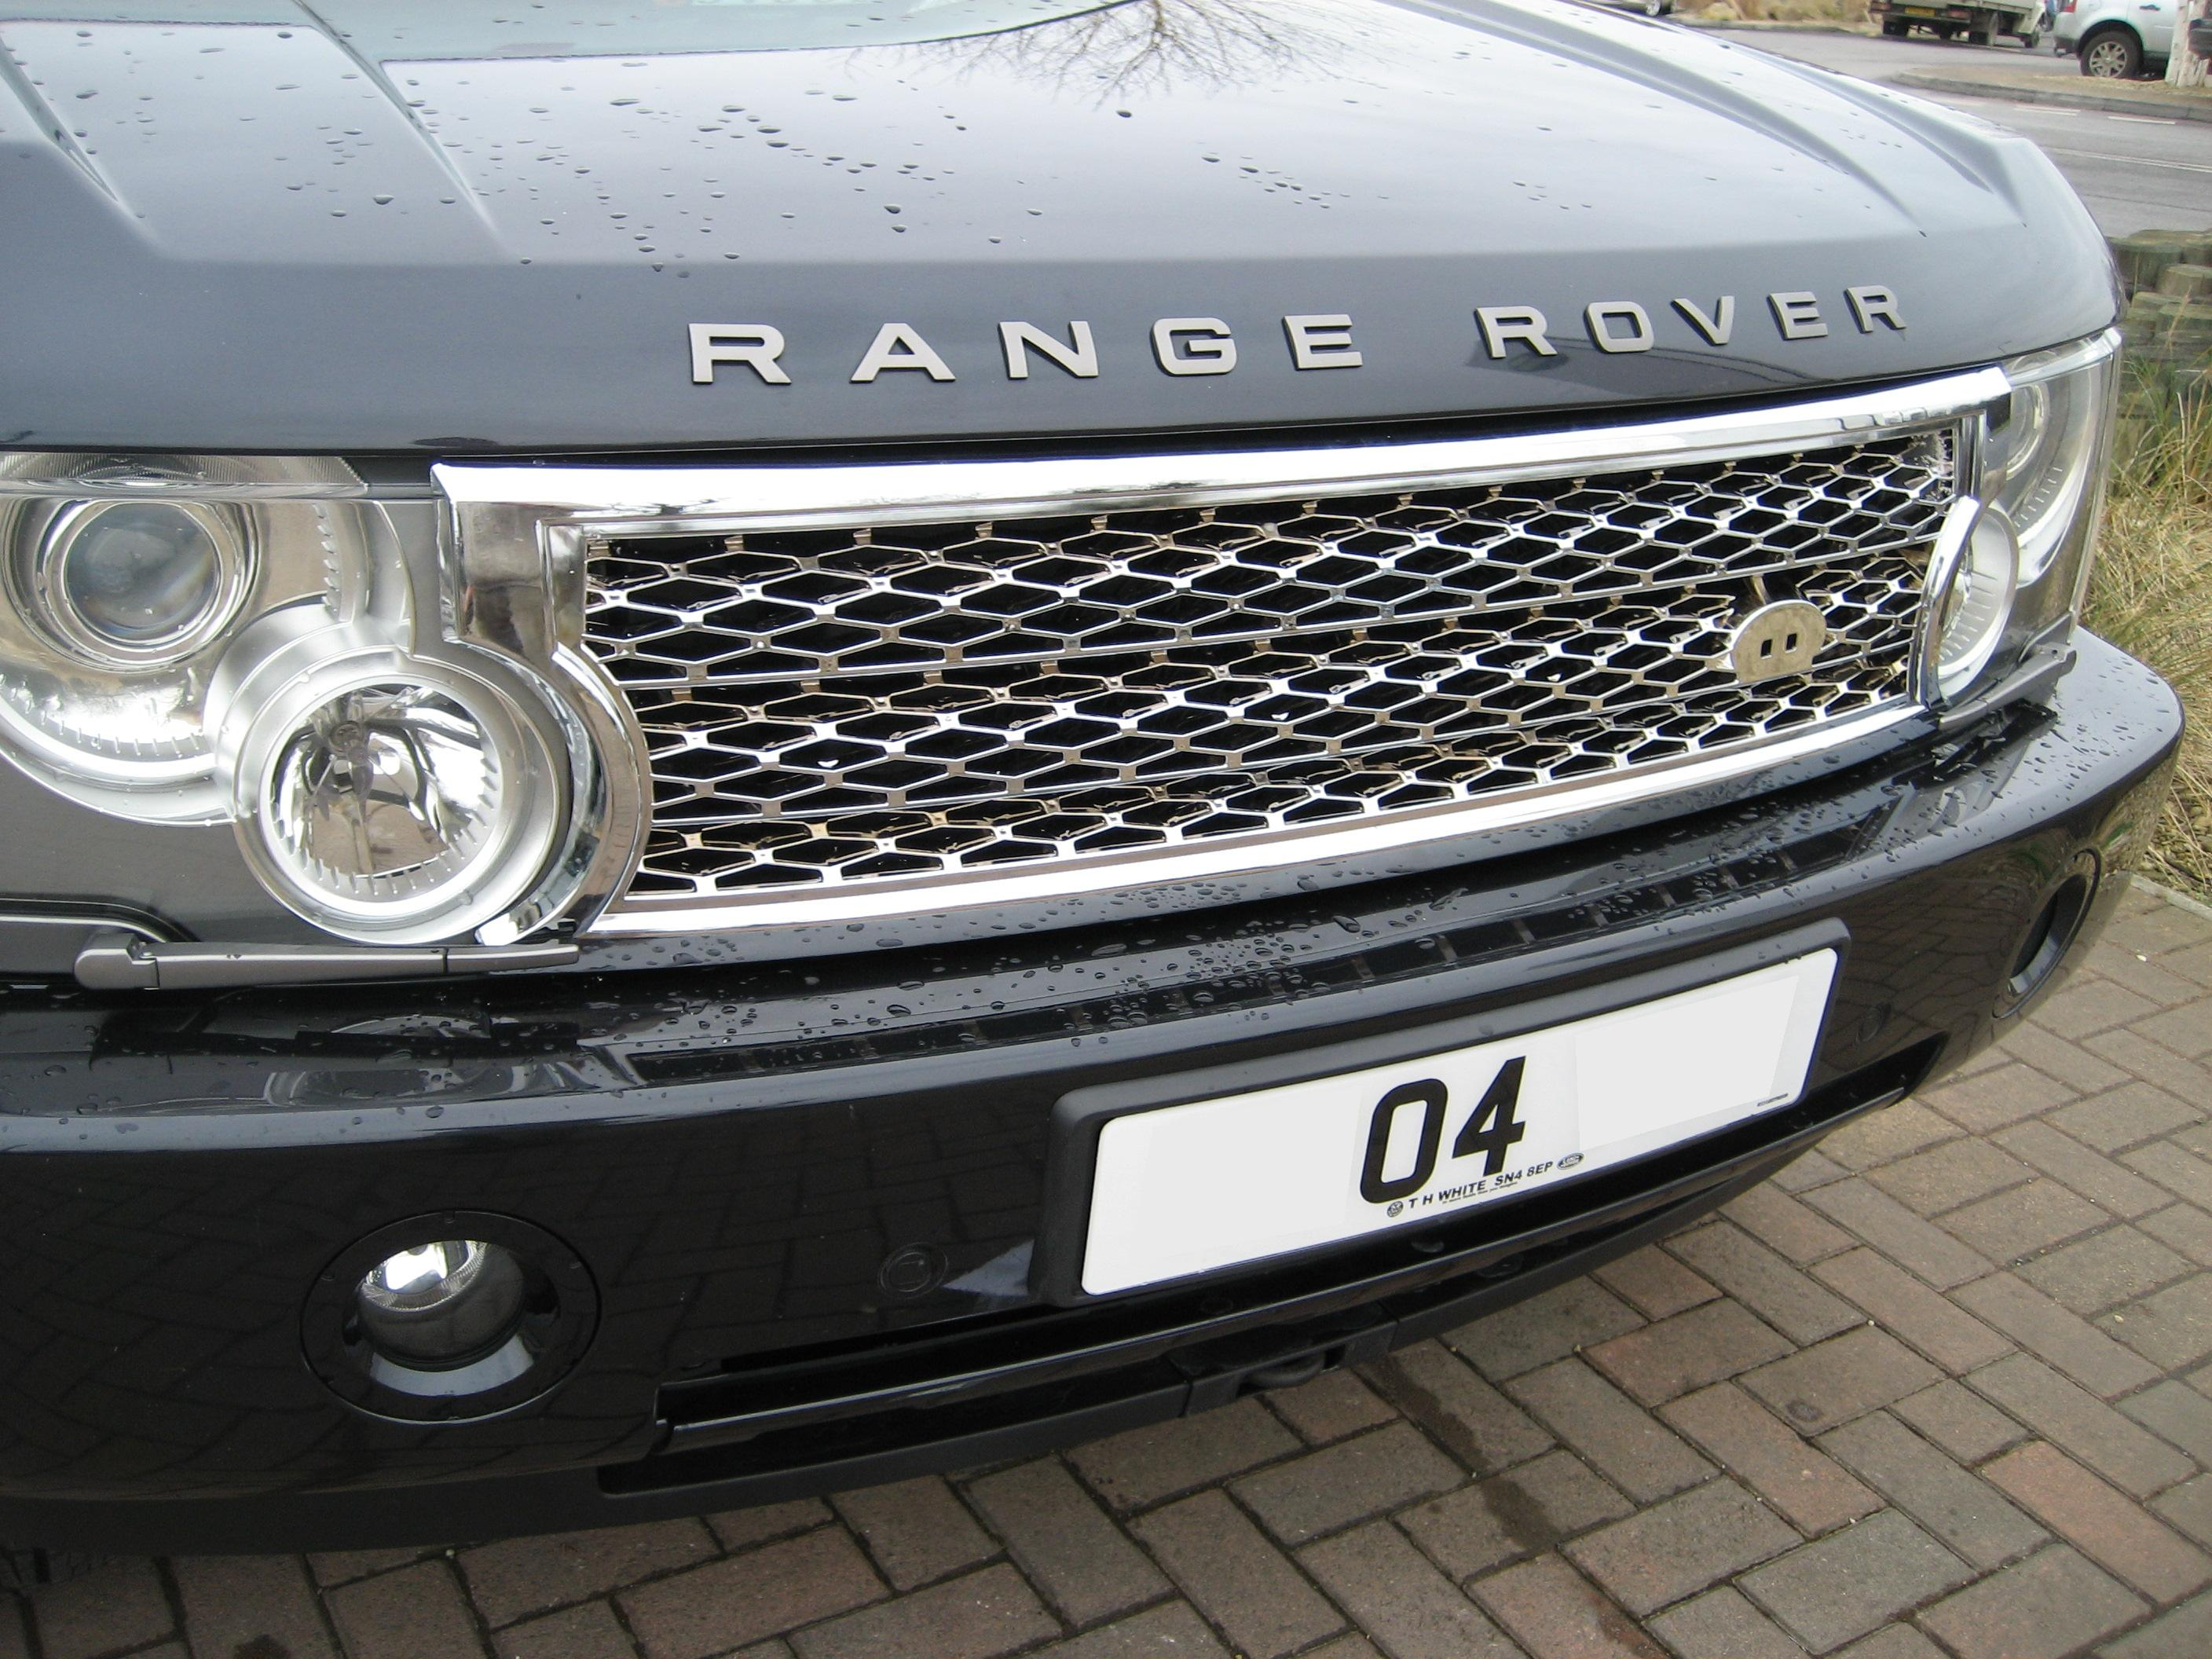 chrome supercharged grille conversion kit for range rover. Black Bedroom Furniture Sets. Home Design Ideas